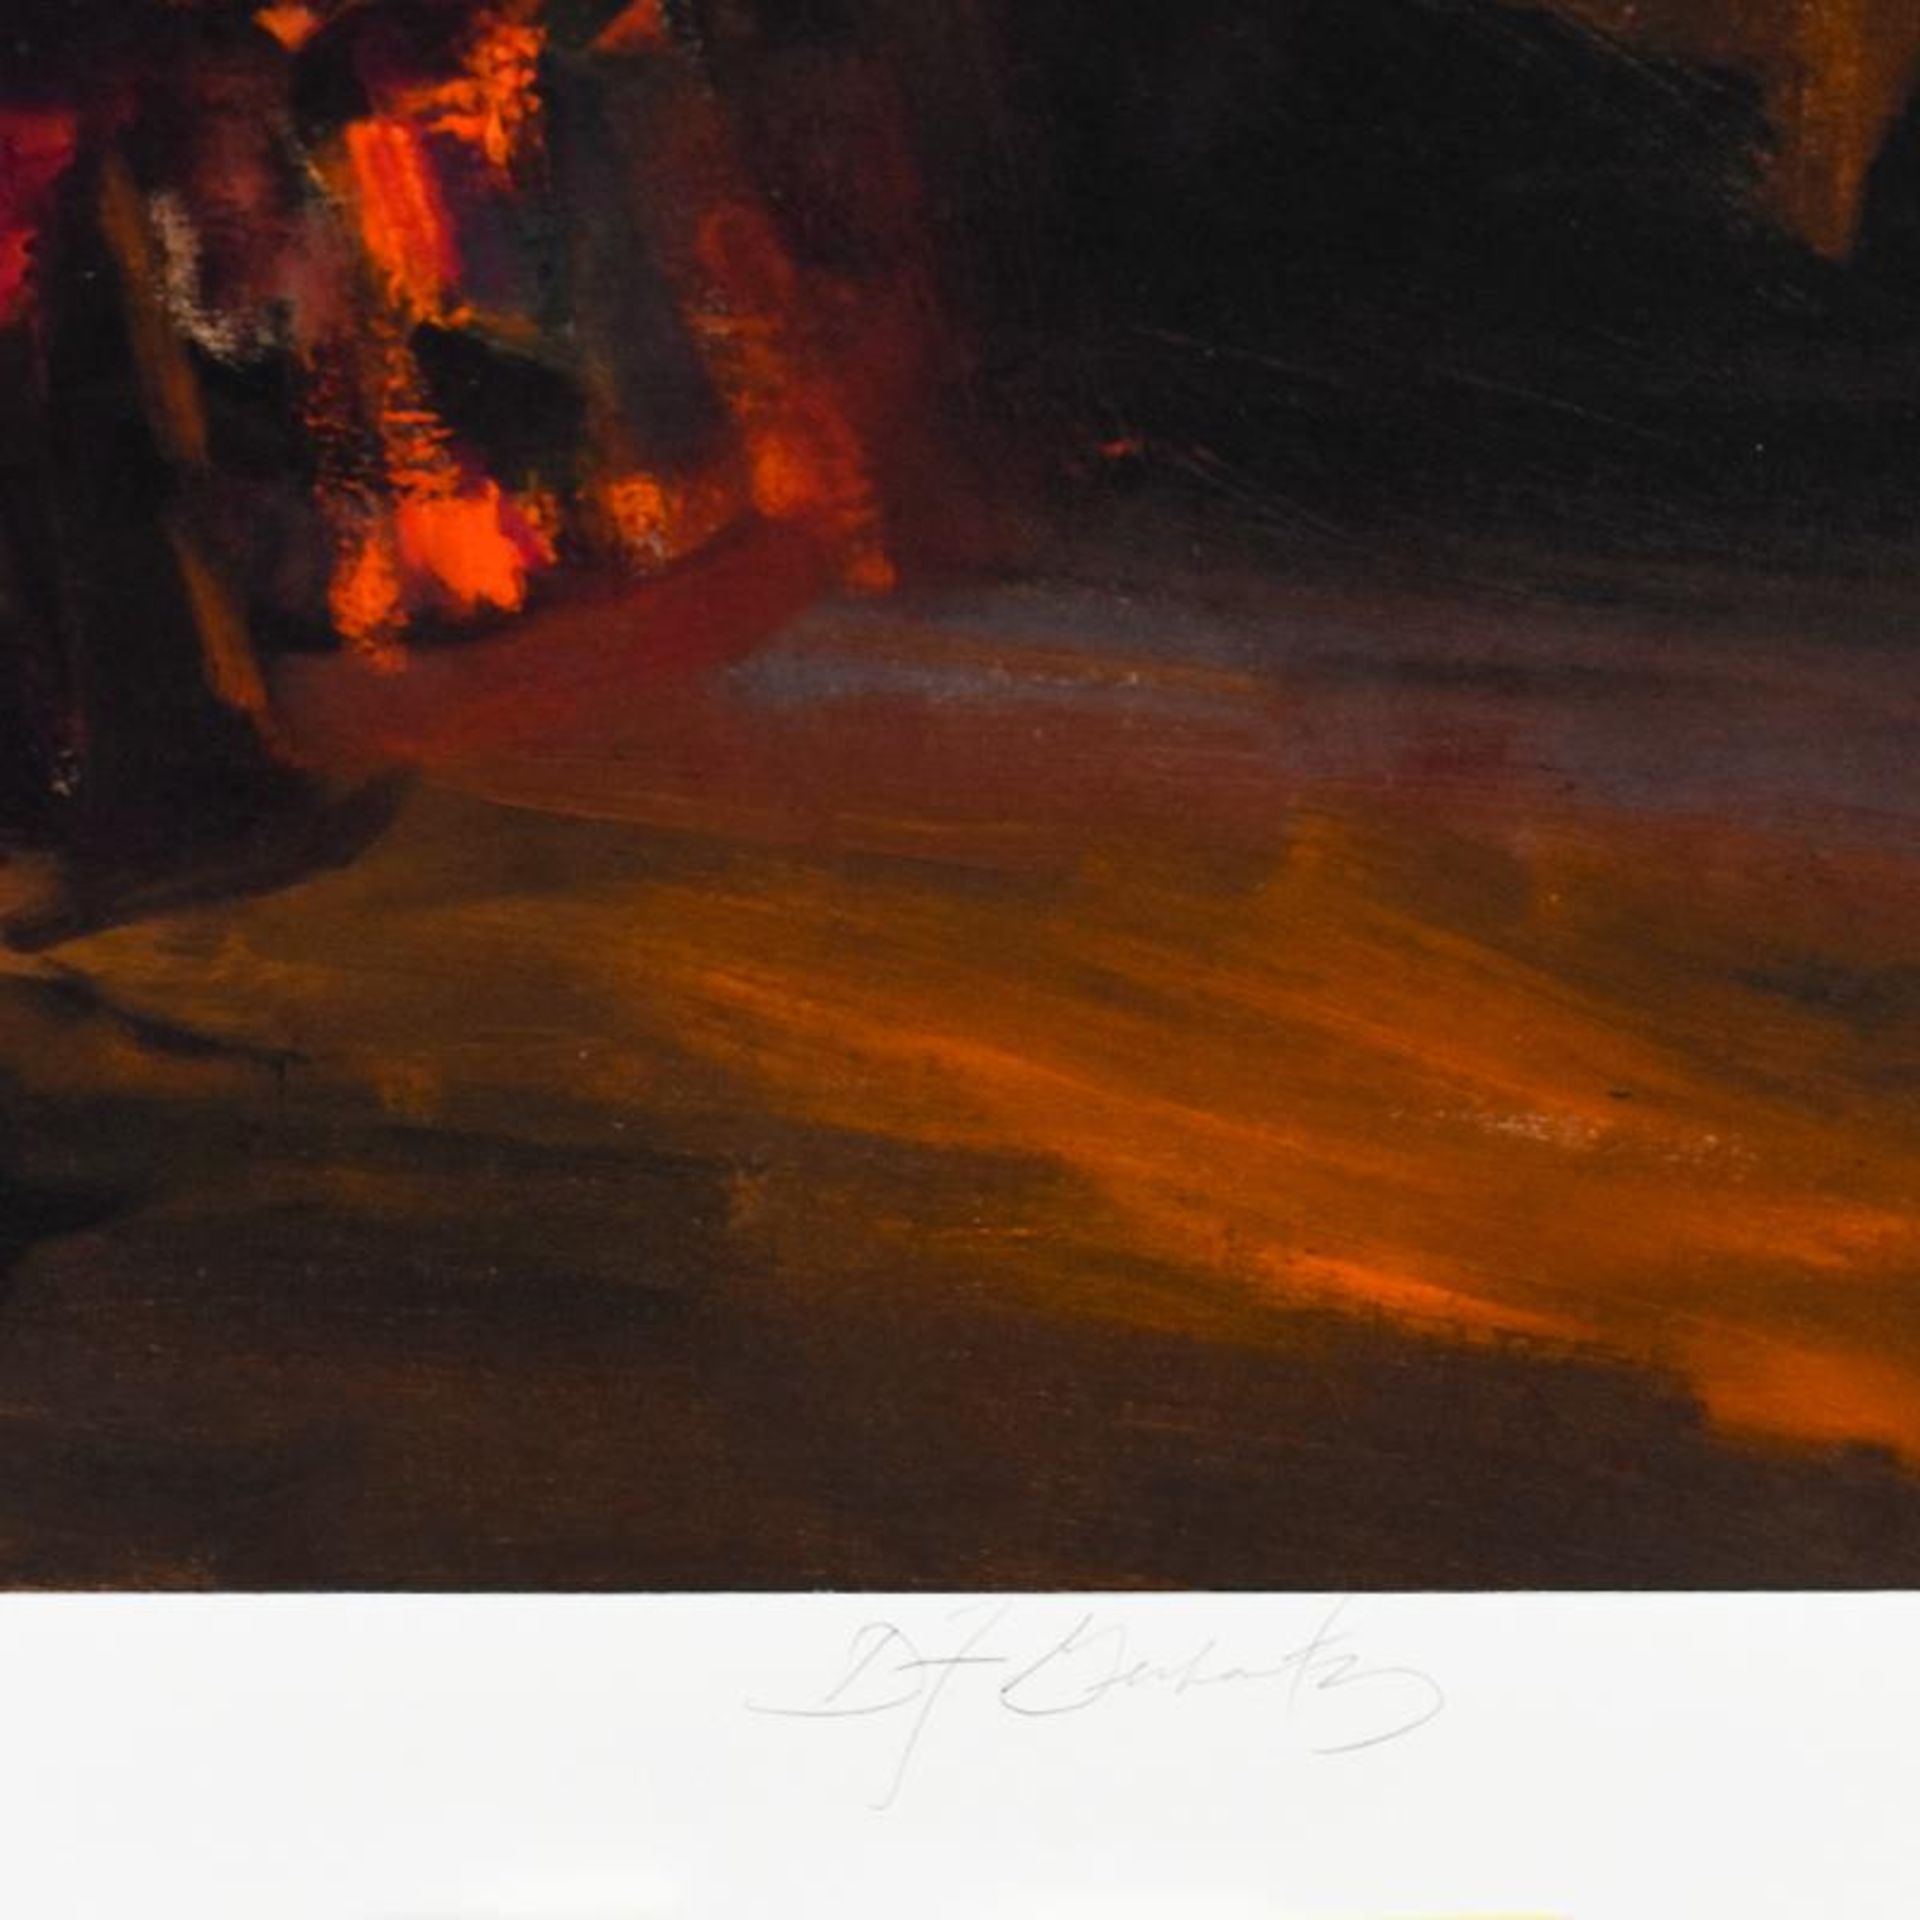 """Dan Gerhartz, """"Viva Flamenco"""" Limited Edition, Numbered and Hand Signed with Let - Image 2 of 2"""